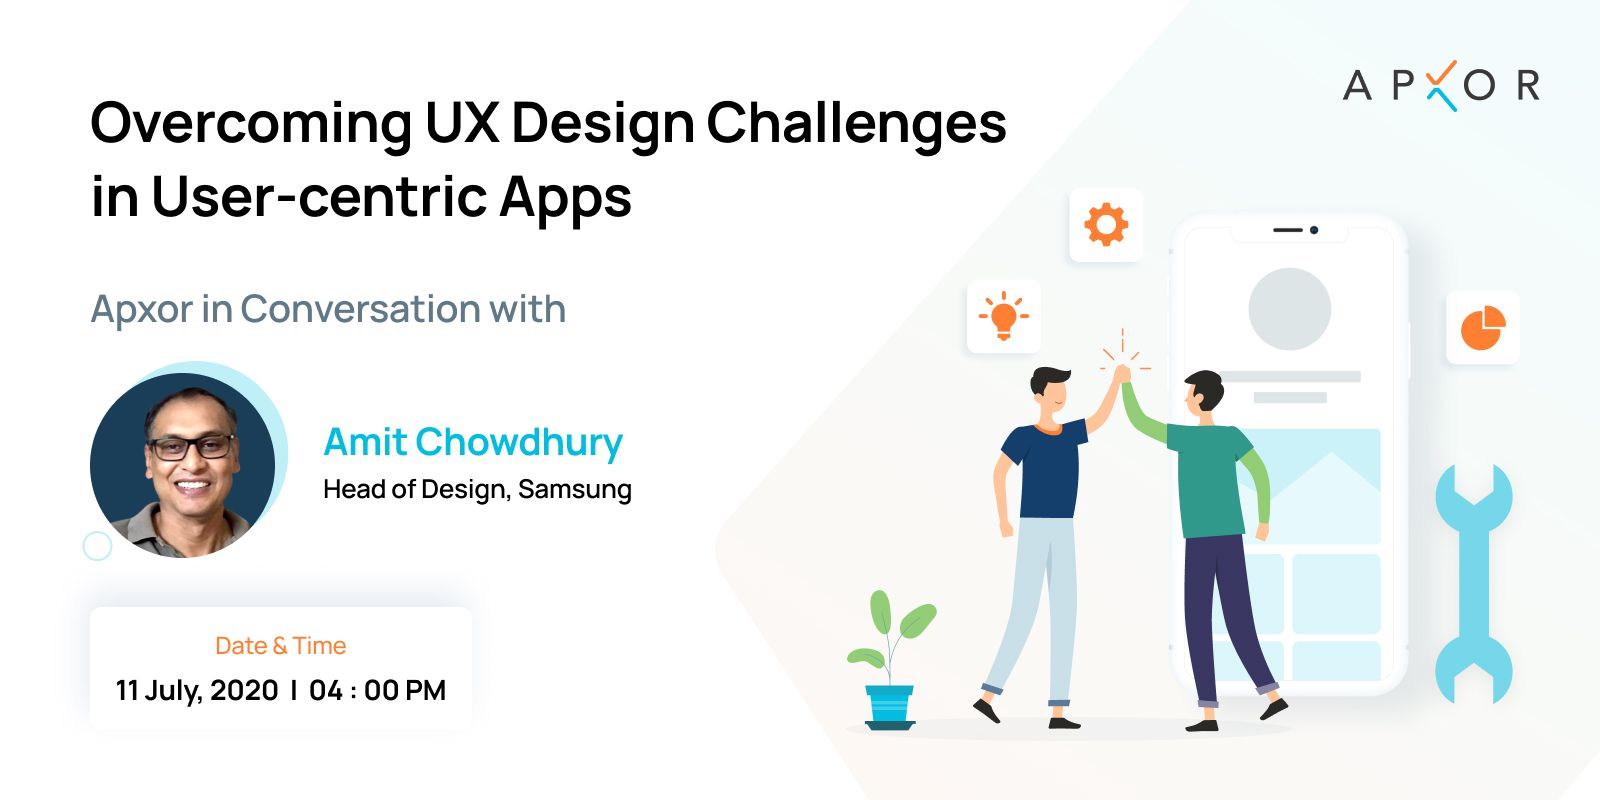 Overcoming UX Design Challenges in User-Centric Apps